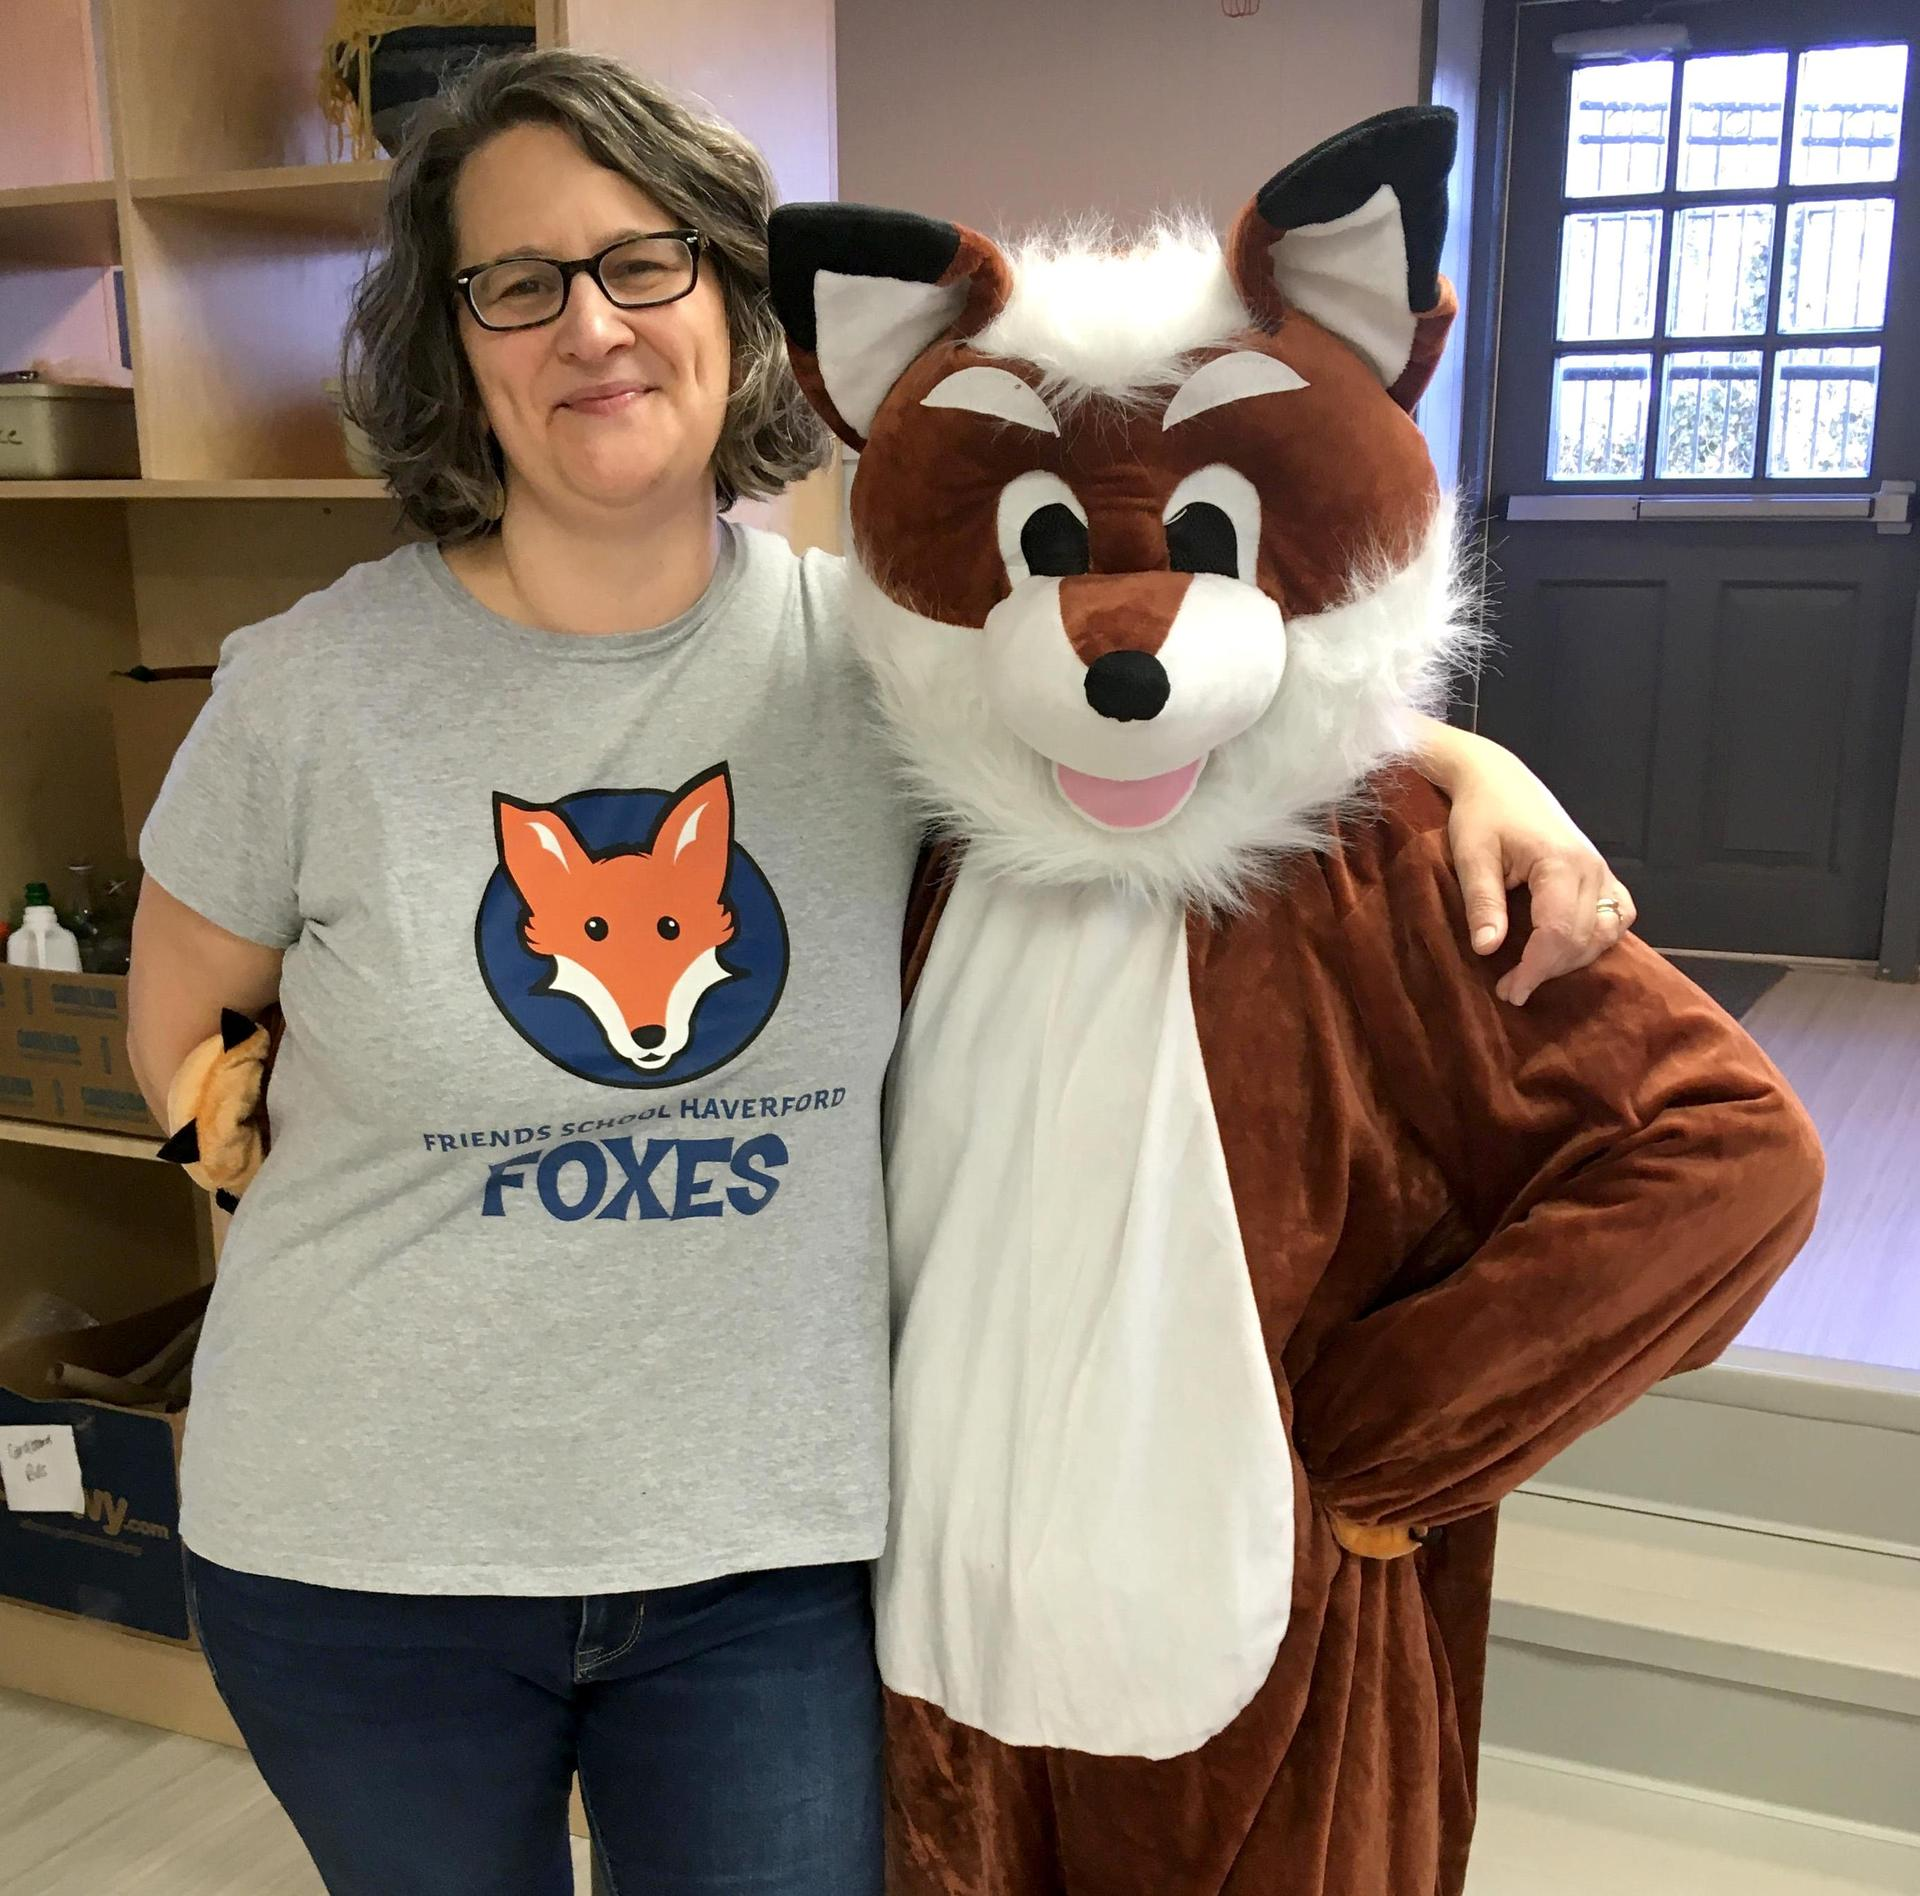 Liza and the fox